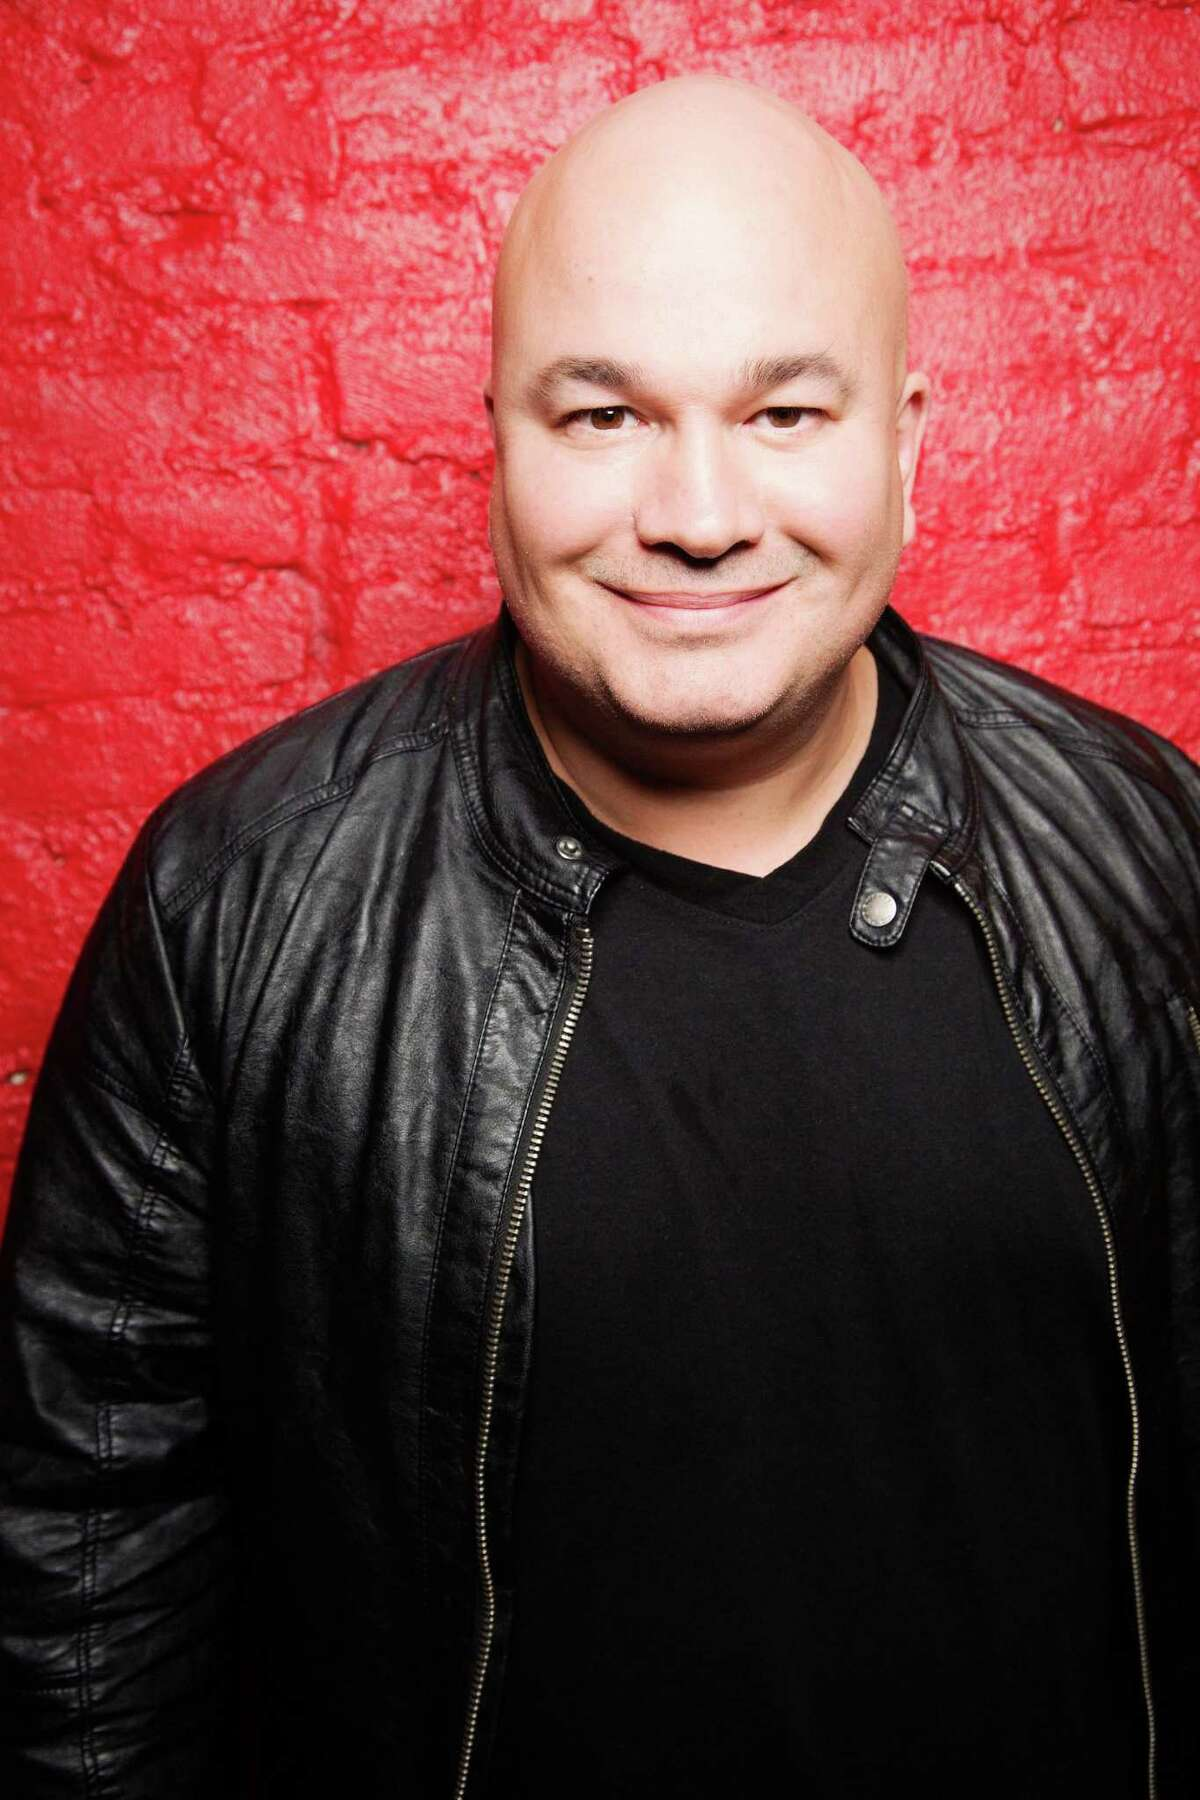 Comedian Robert Kelly headlines at Treehouse Comedy Club in Westport on May 12.